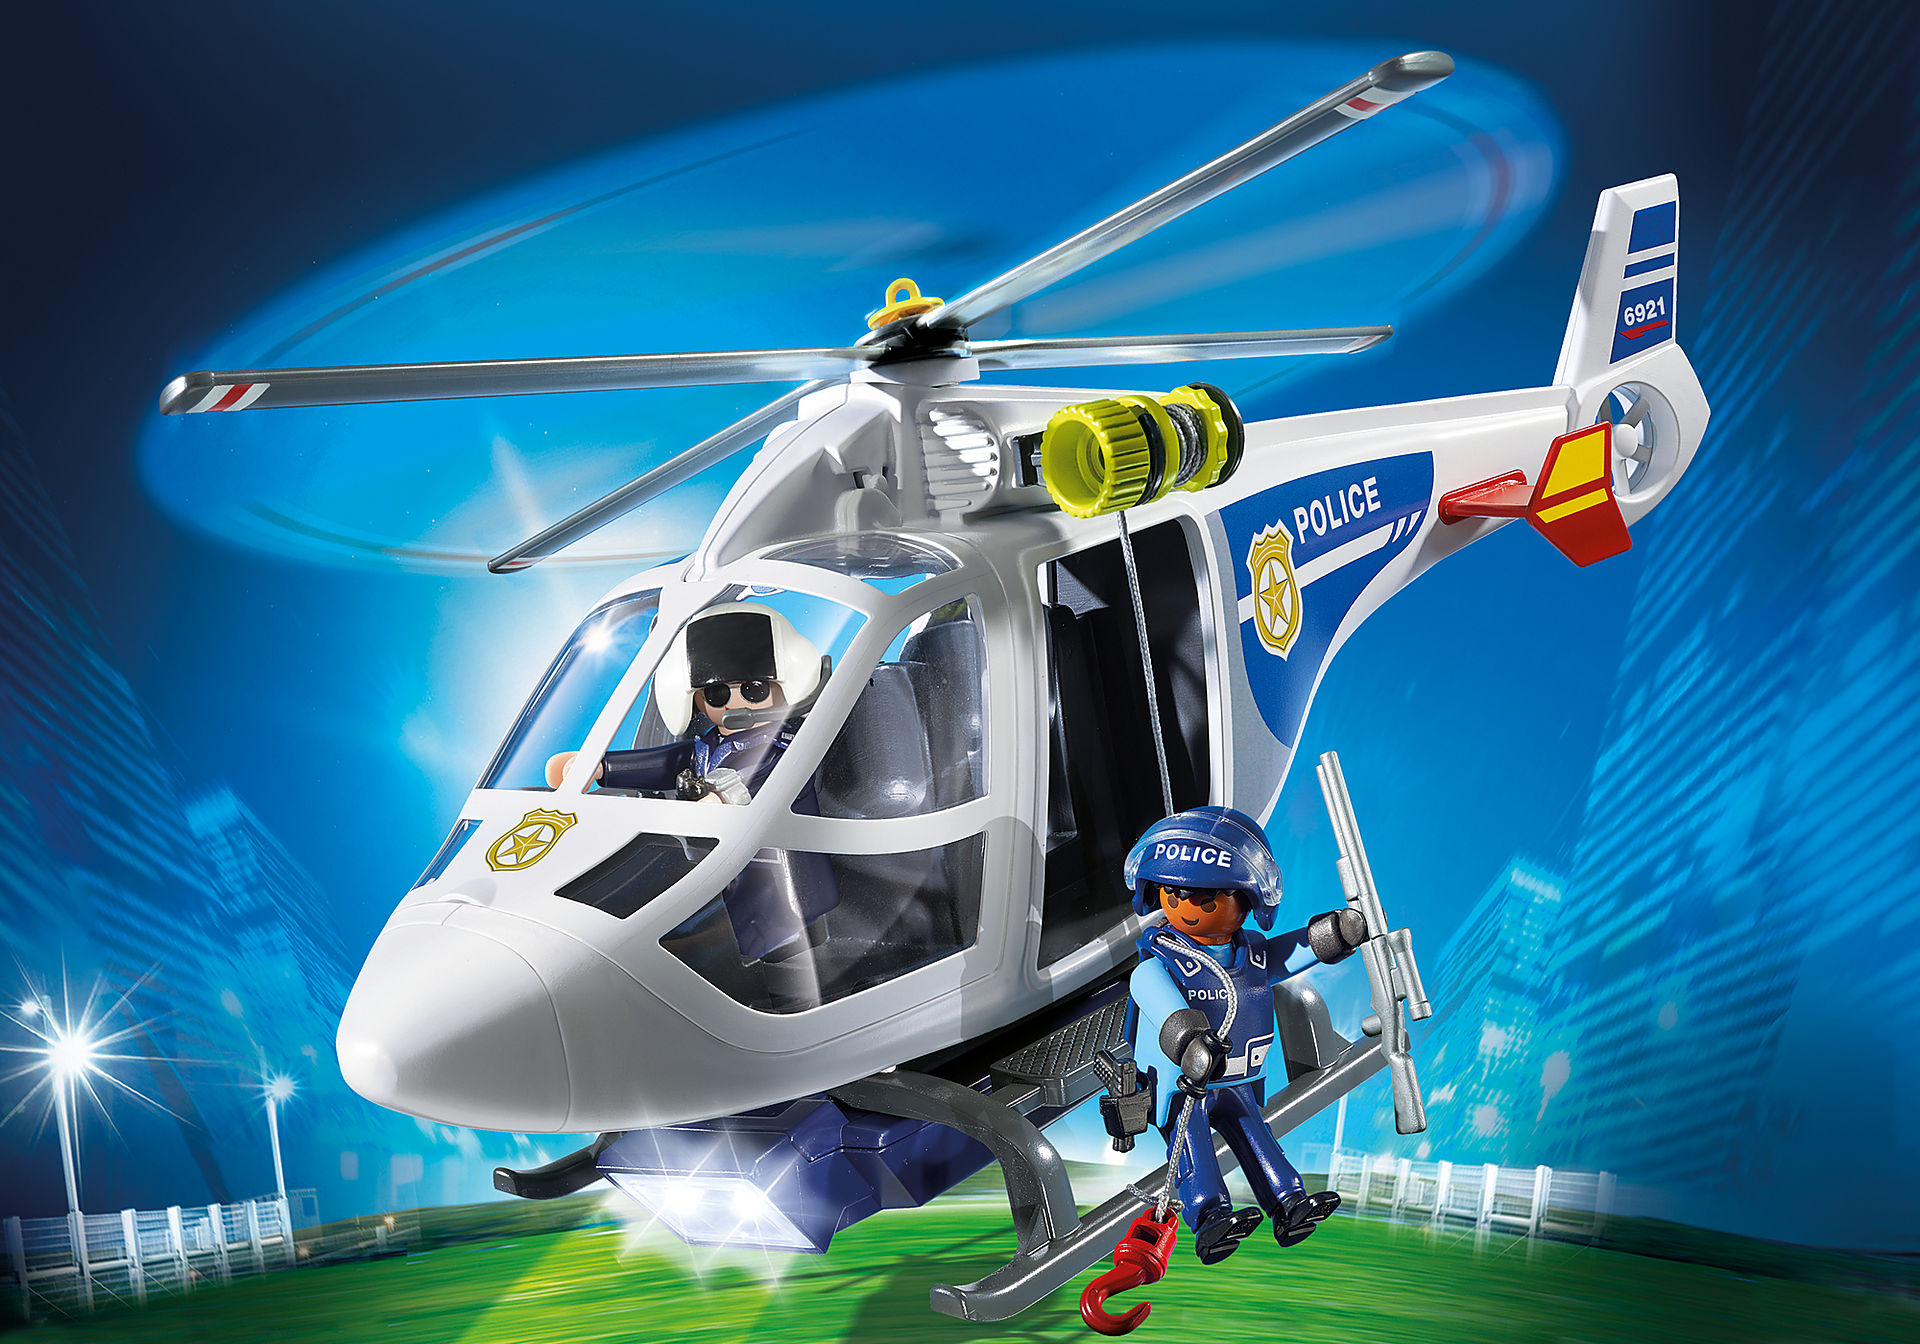 6921 Police Helicopter with LED Searchlight zoom image1